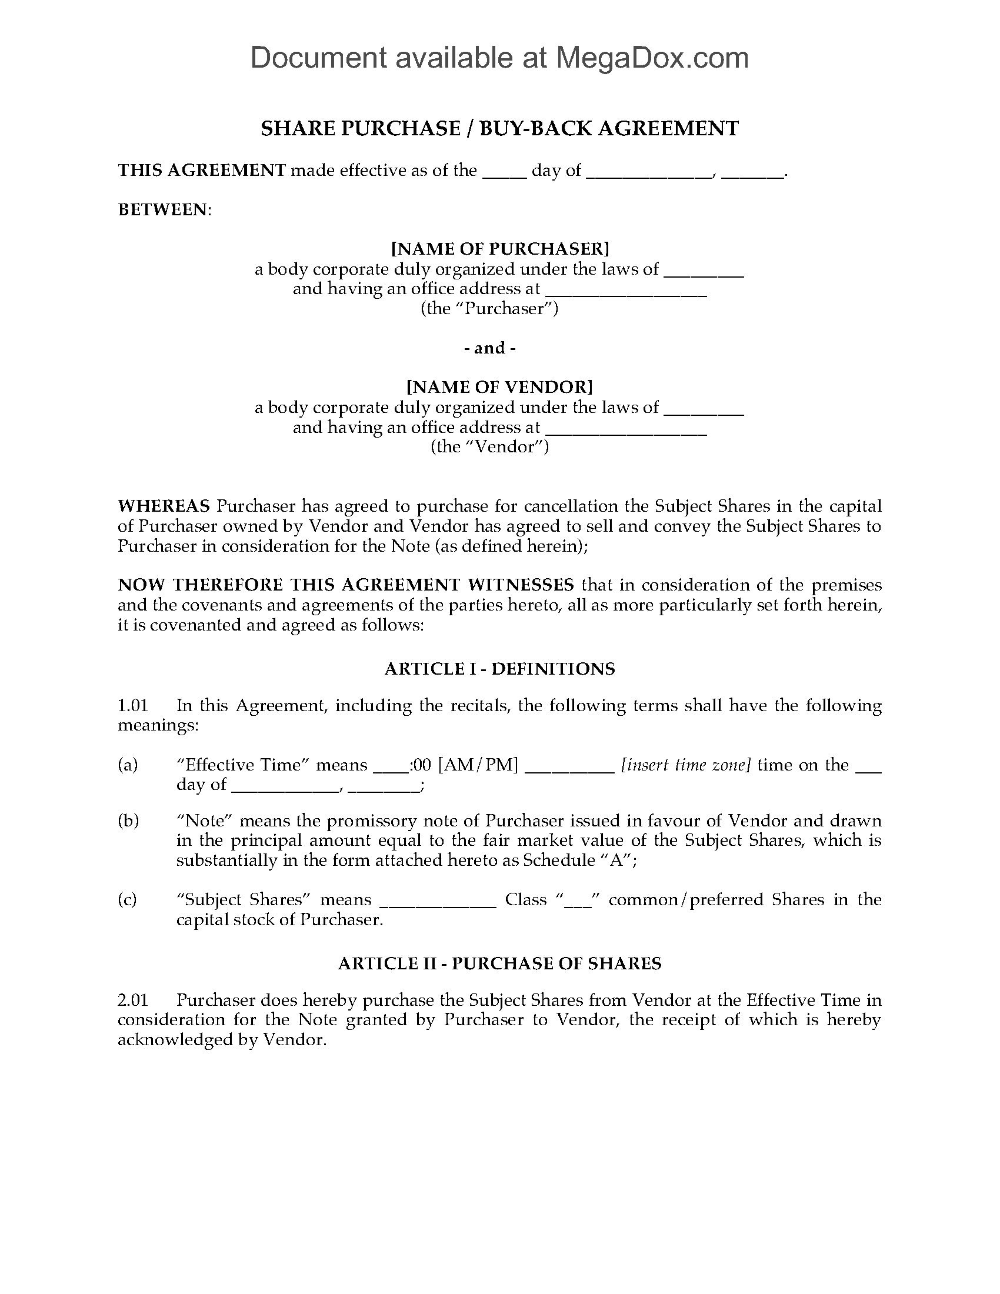 Share Repurchase Buyback Agreement Legal Forms And Business Regarding Vendor Take Back Agreement Legal Forms Professional Graphic Design Professional Templates